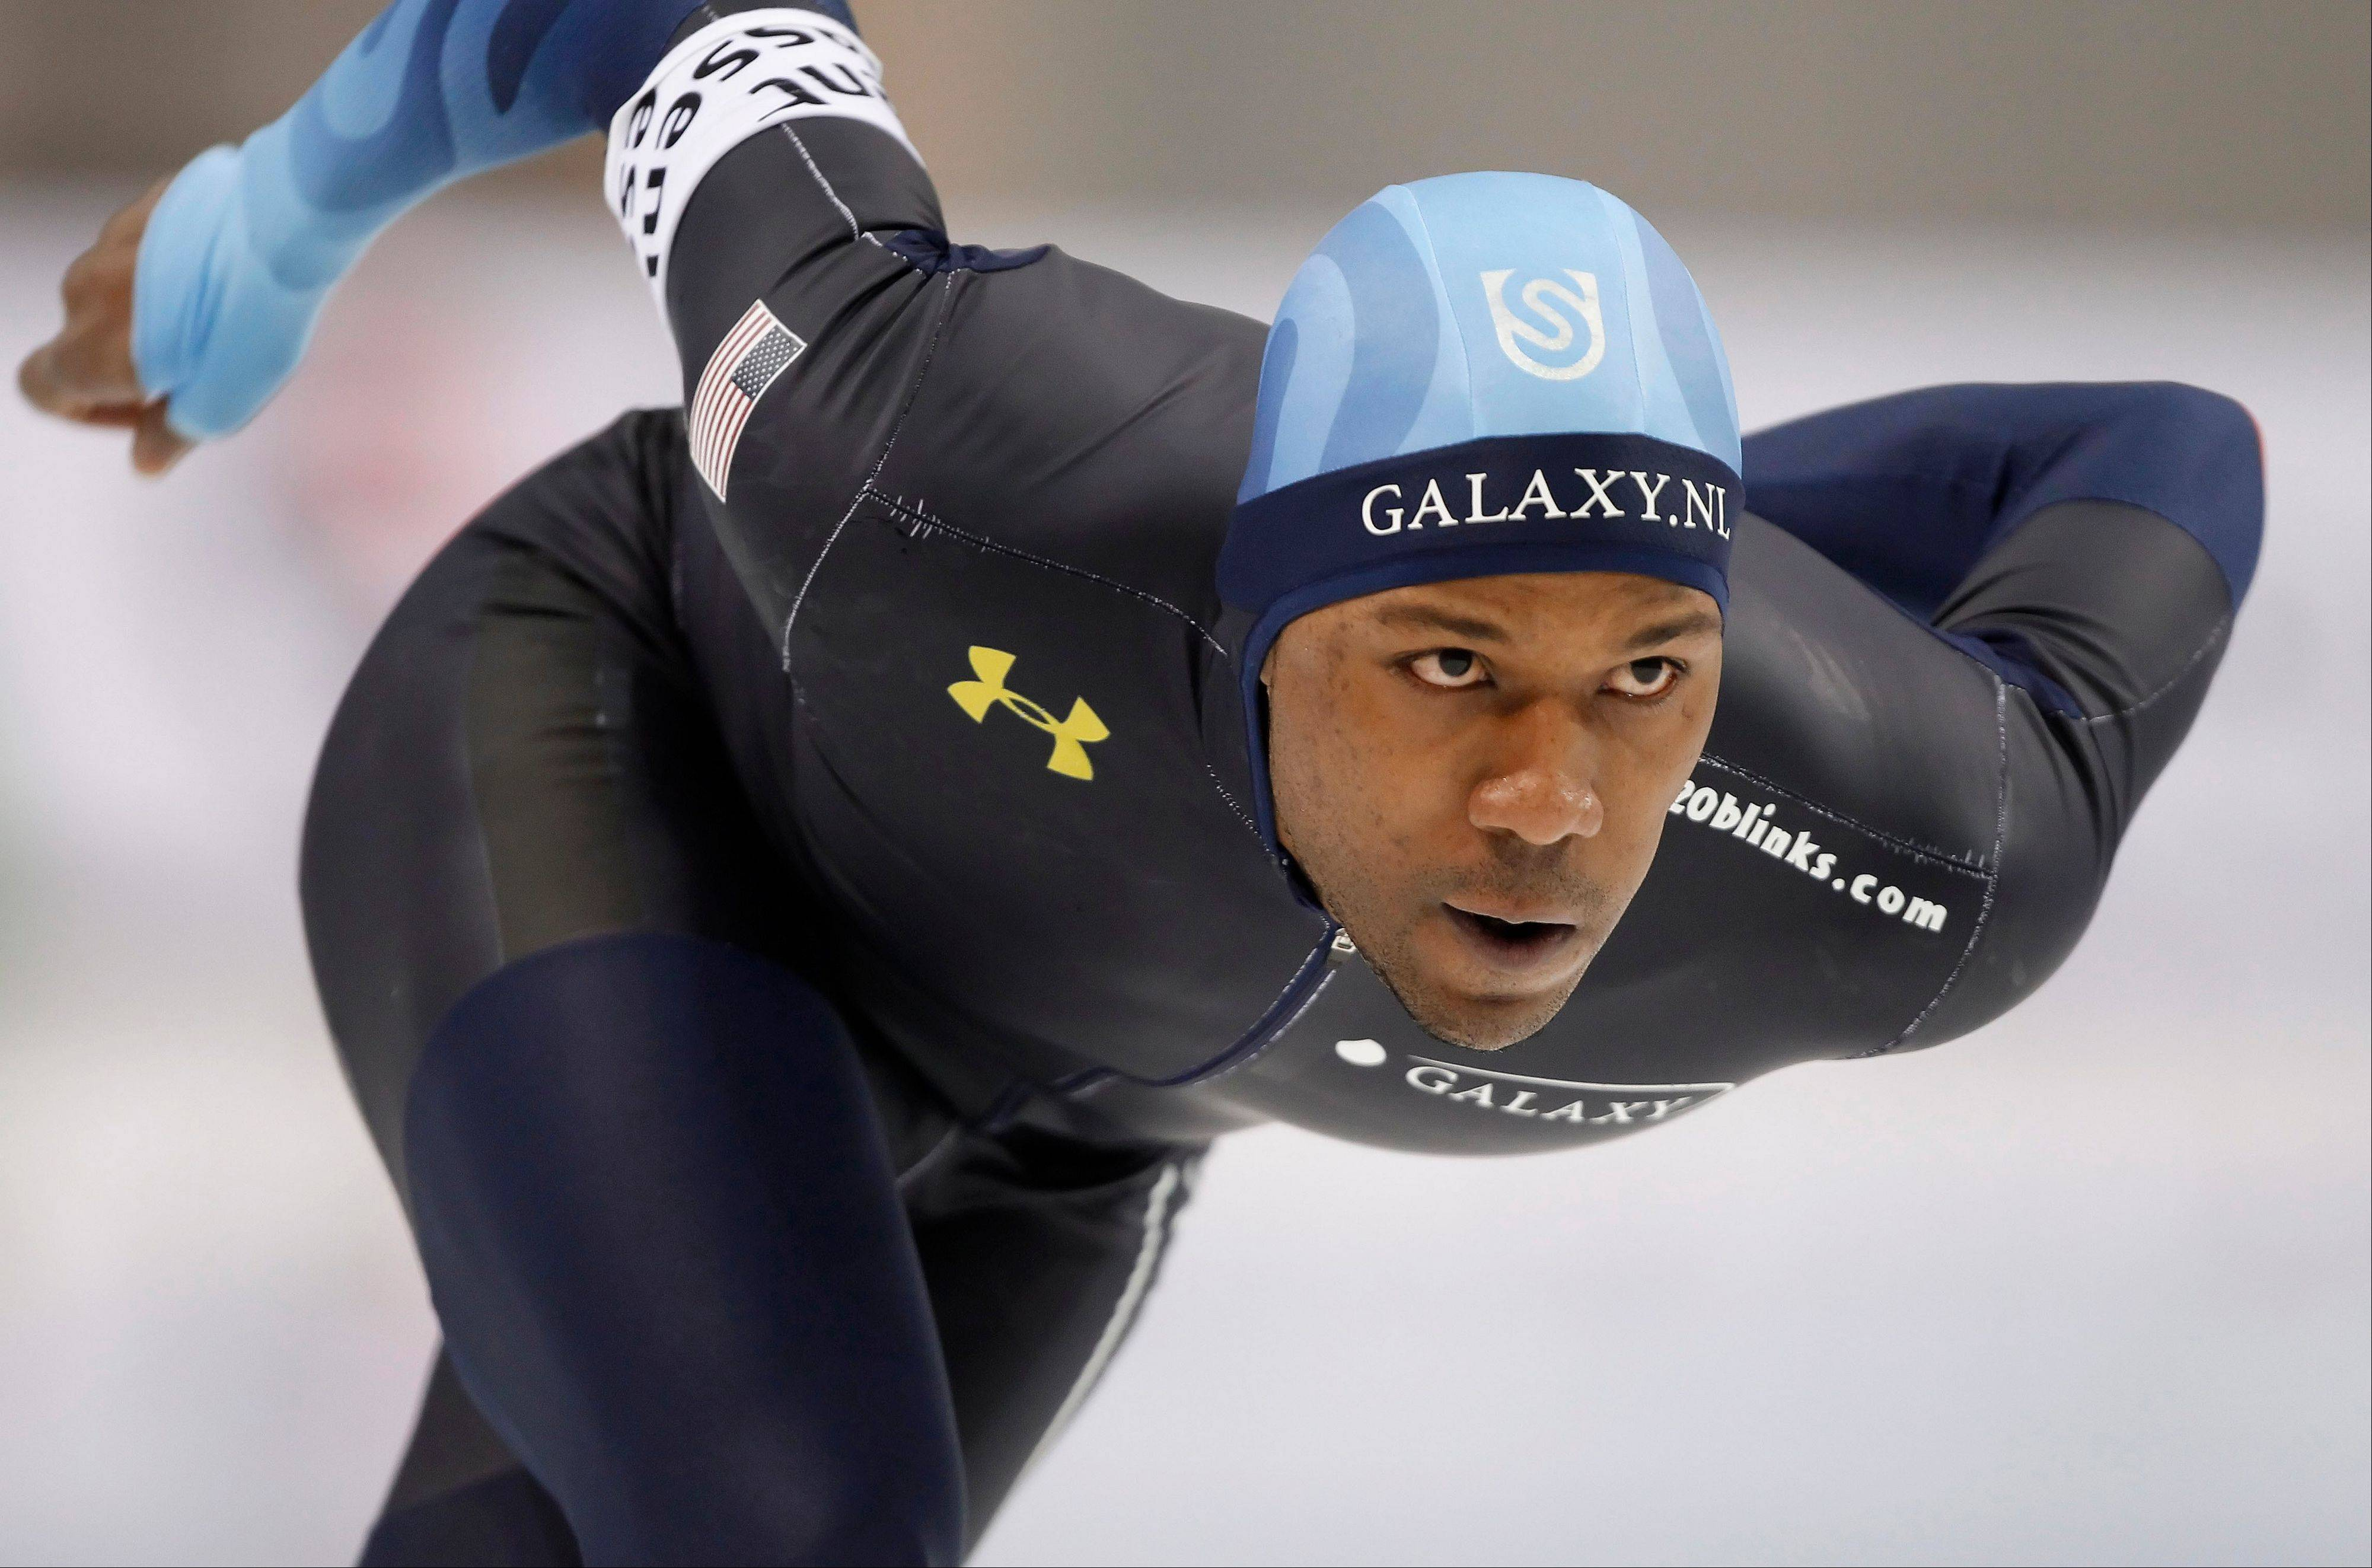 Chicago speedskater Shani Davis has won two Olympic gold medals, but he isn�t guaranteed a spot on the U.S. team.